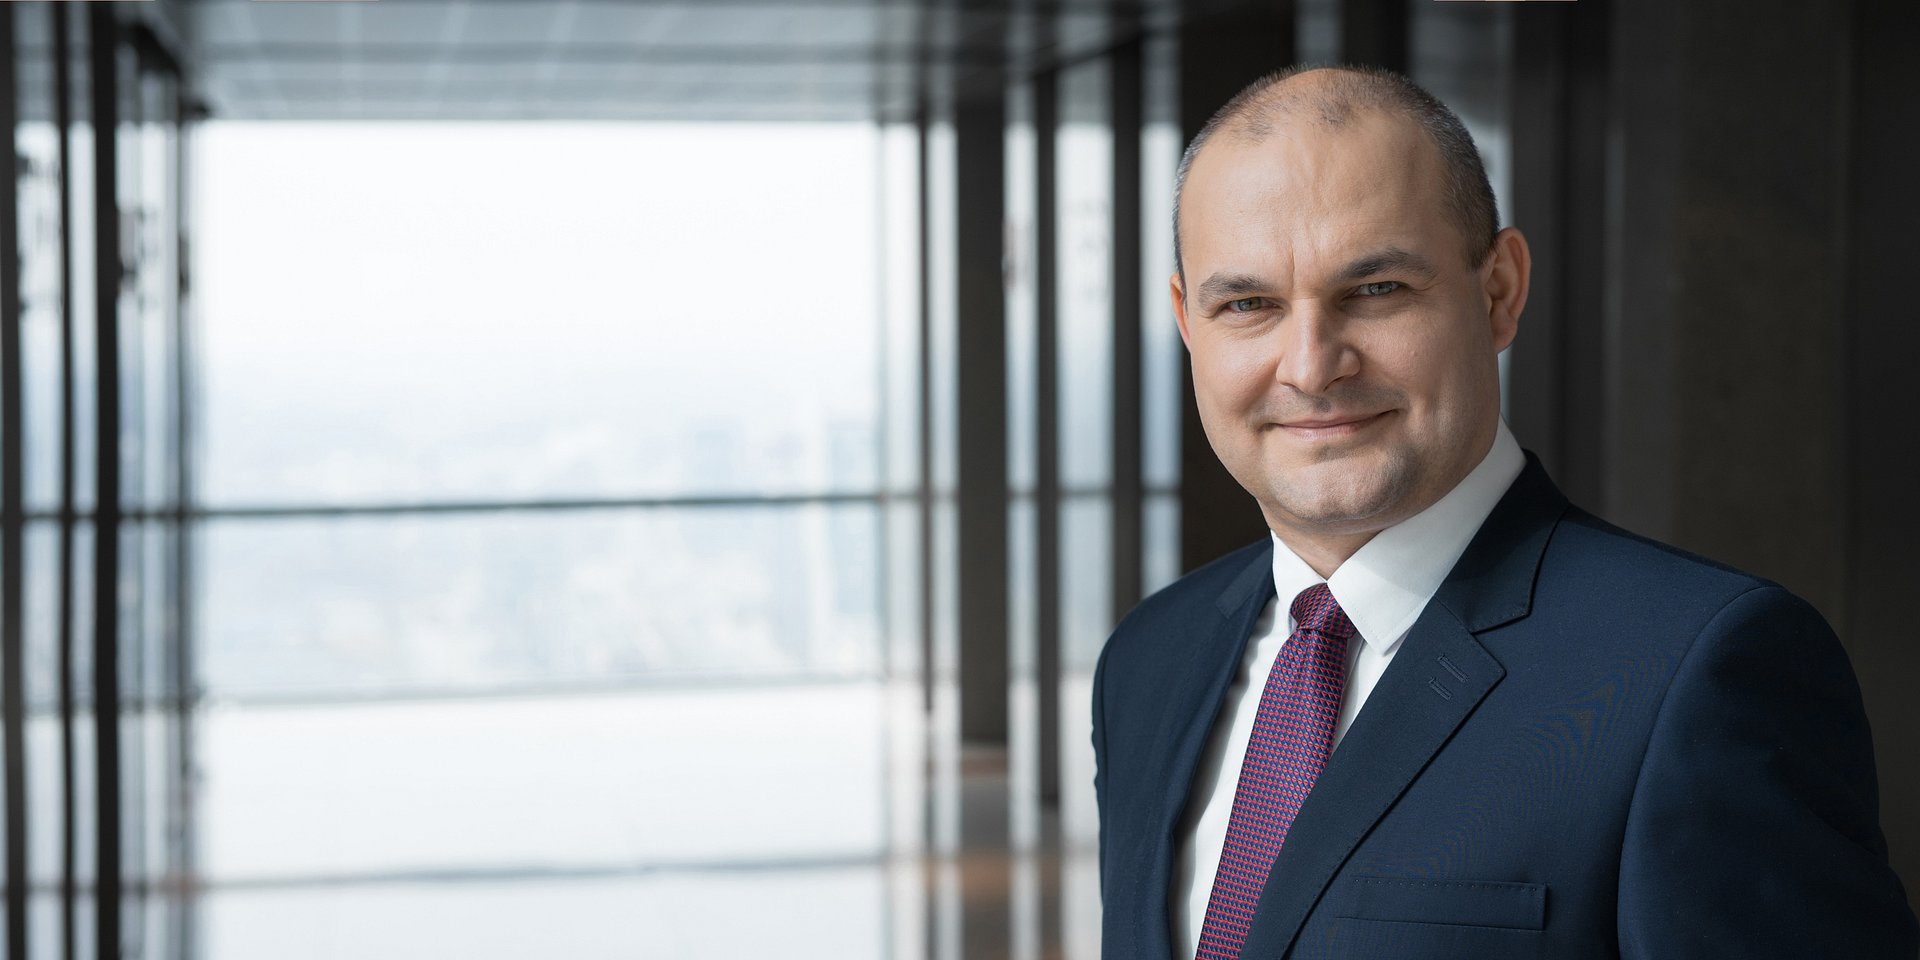 HUBERT MANTURZYK HAS JOINED DEBT & STRUCTURED FINANCE DEPARTMENT AT CBRE POLAND